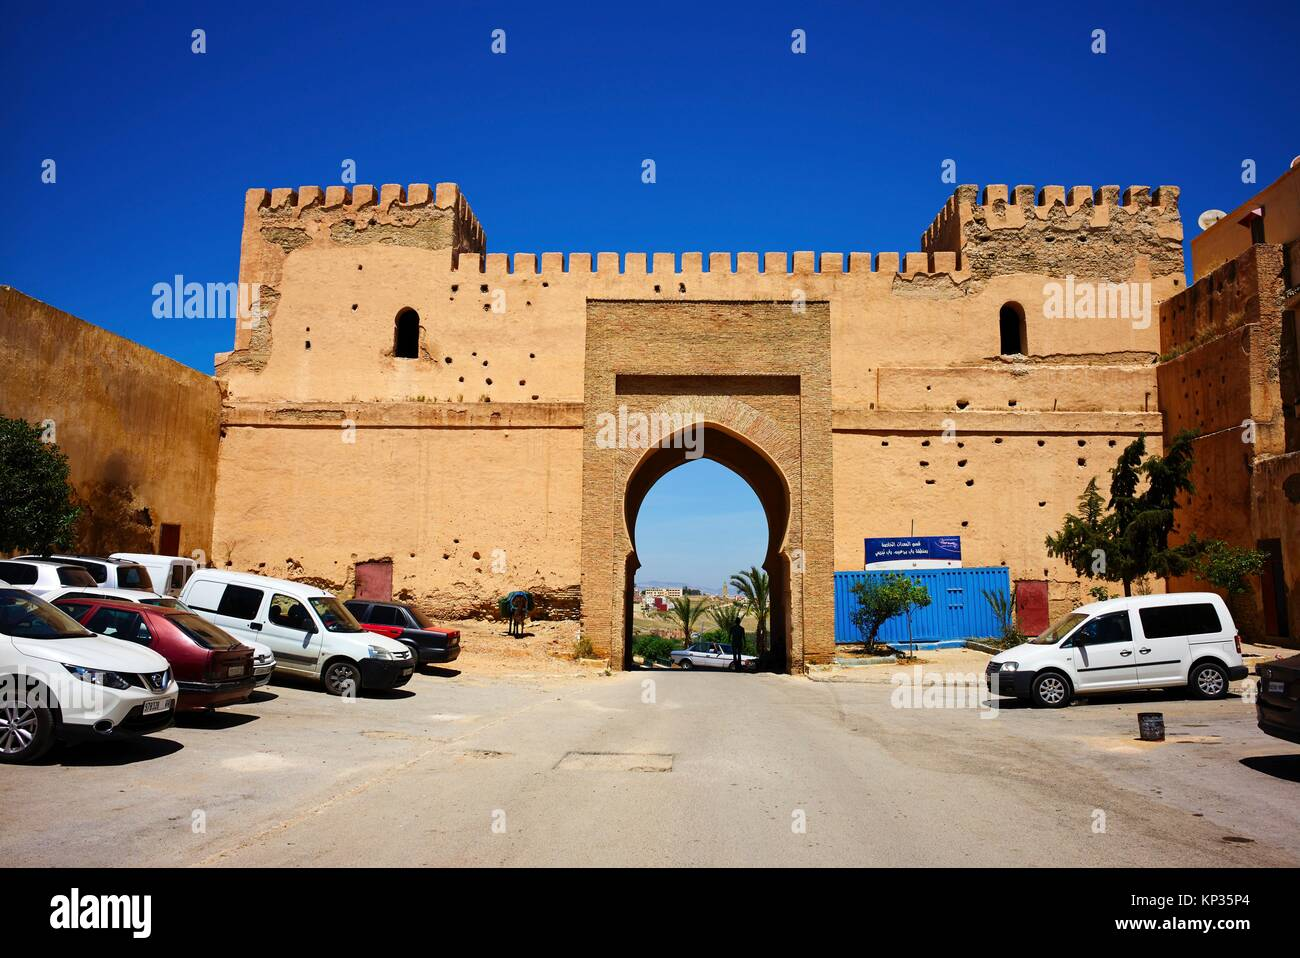 The gate to the Medina (old city) of Meknes, Morocco - Stock Image